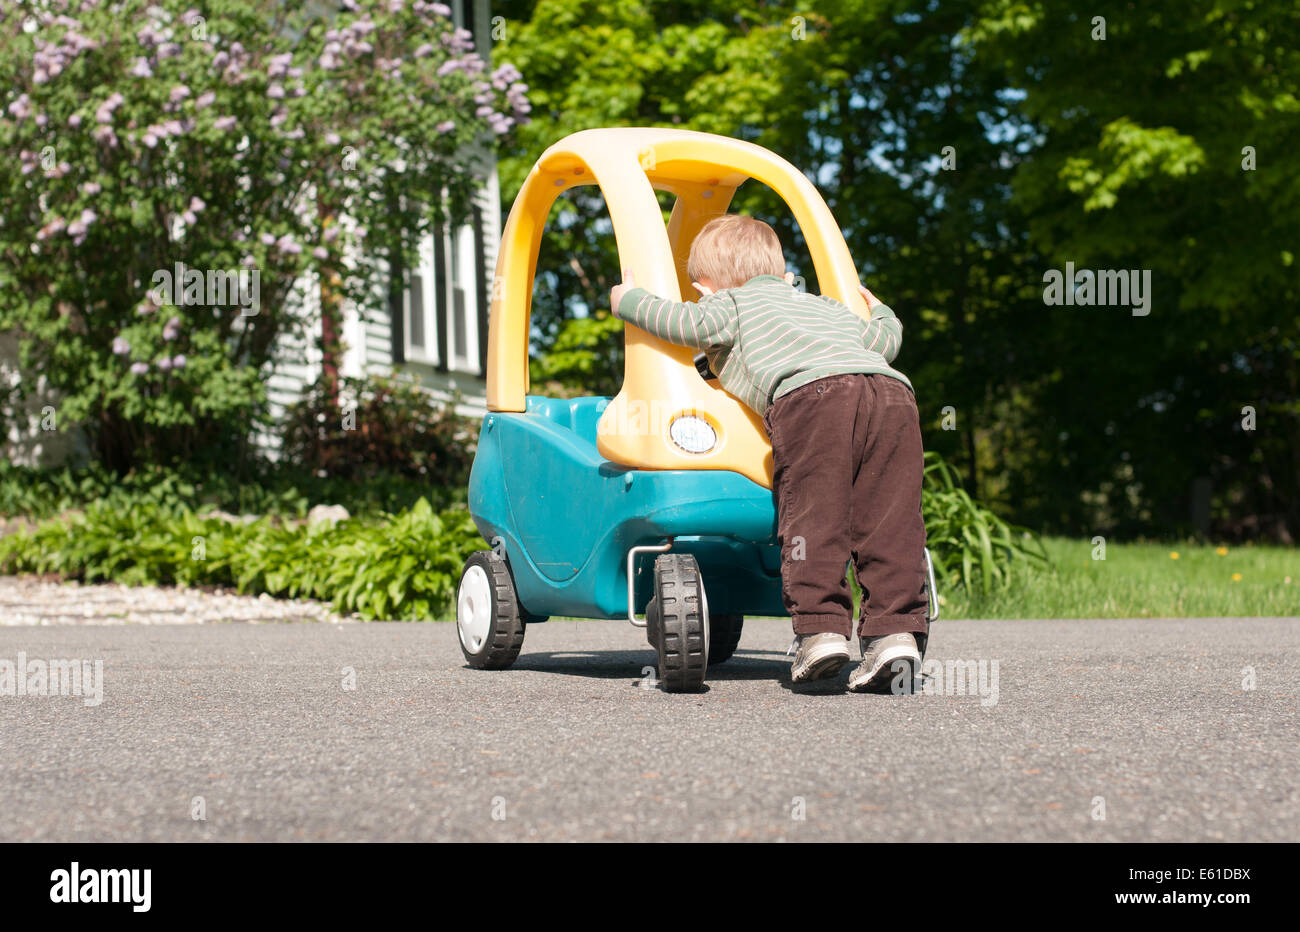 A toddler boy leans over the front of his large toy car as if he is working on it. - Stock Image